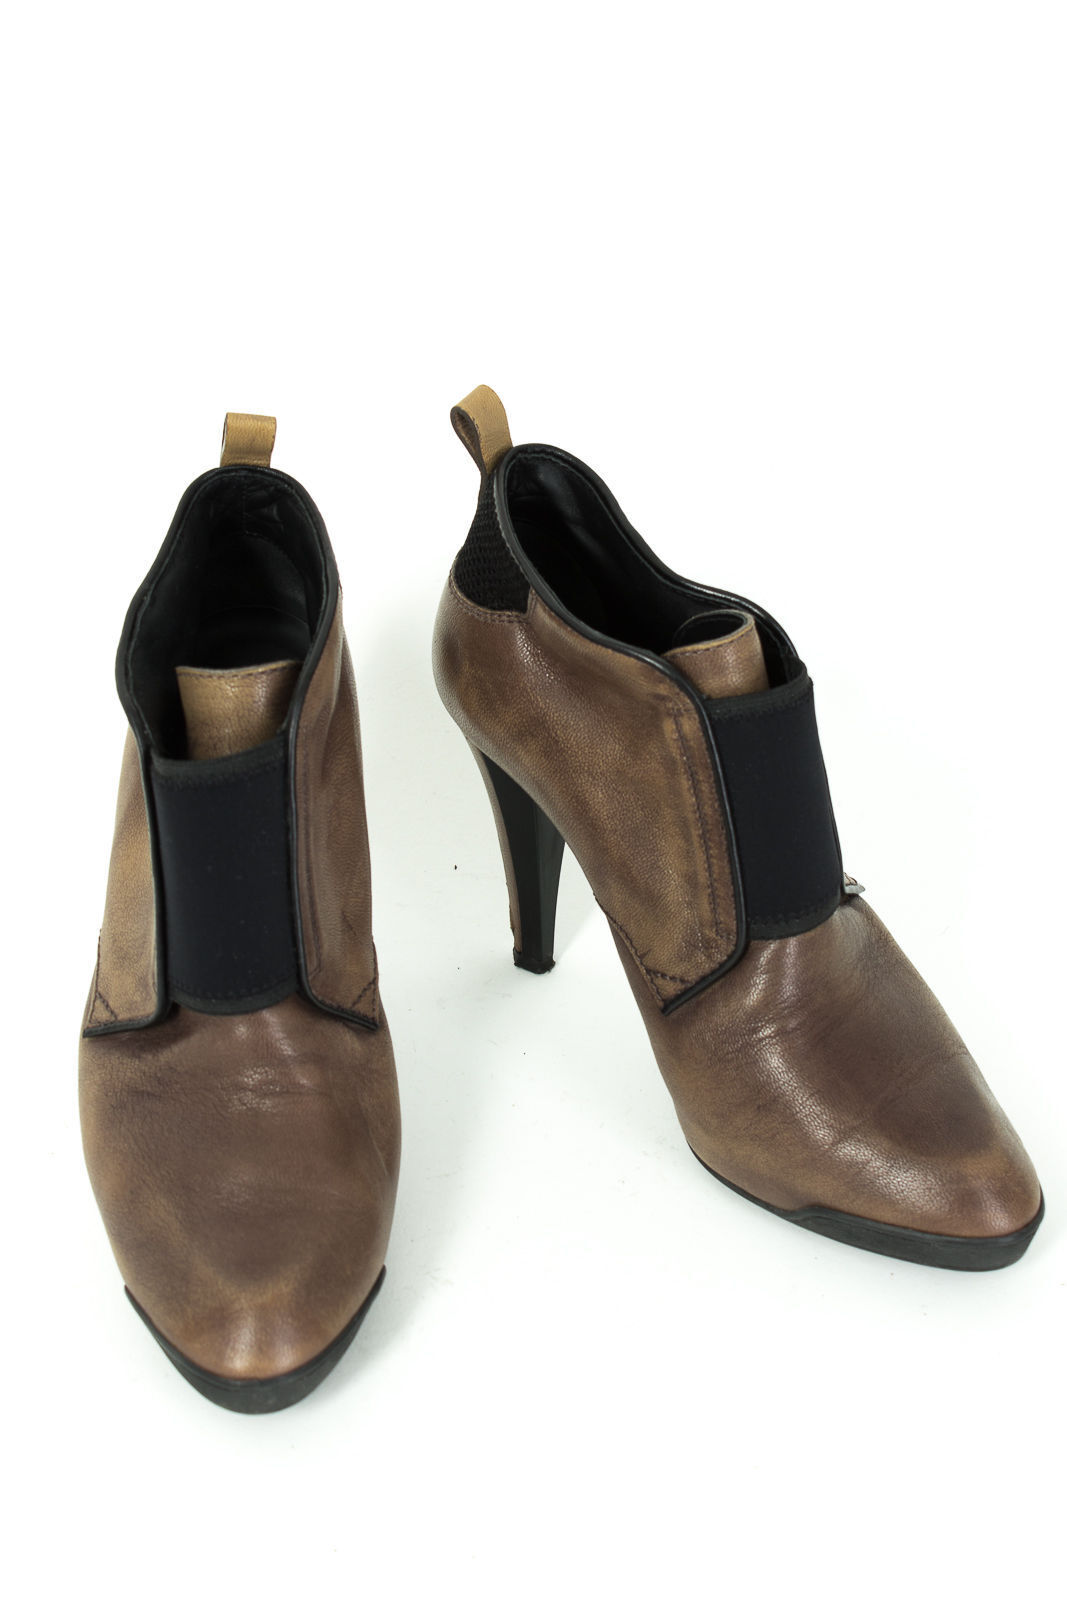 TOD'S Chaussures Taille FR 37,5 = UK 4,5 cuir véritable Bottines bottes stiletto high heels